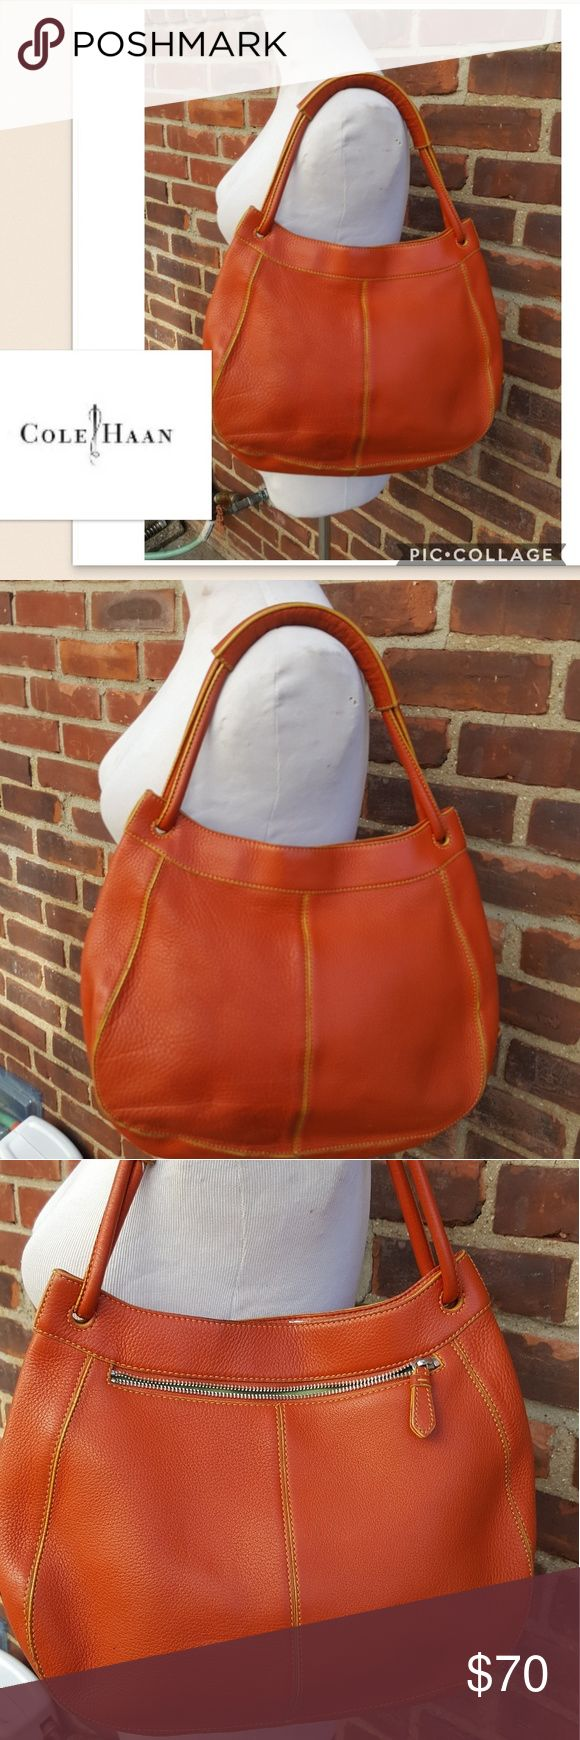 Cole Haan pebbled leather shoulder bag Nice orange bag in very good condition with one tiny almost imperceptible Inkspot. Super clean inside and has just been cleaned and conditioned. No dust bag. Height is a little hard to measure because of the shape of the bag. Cole Haan Bags Shoulder Bags